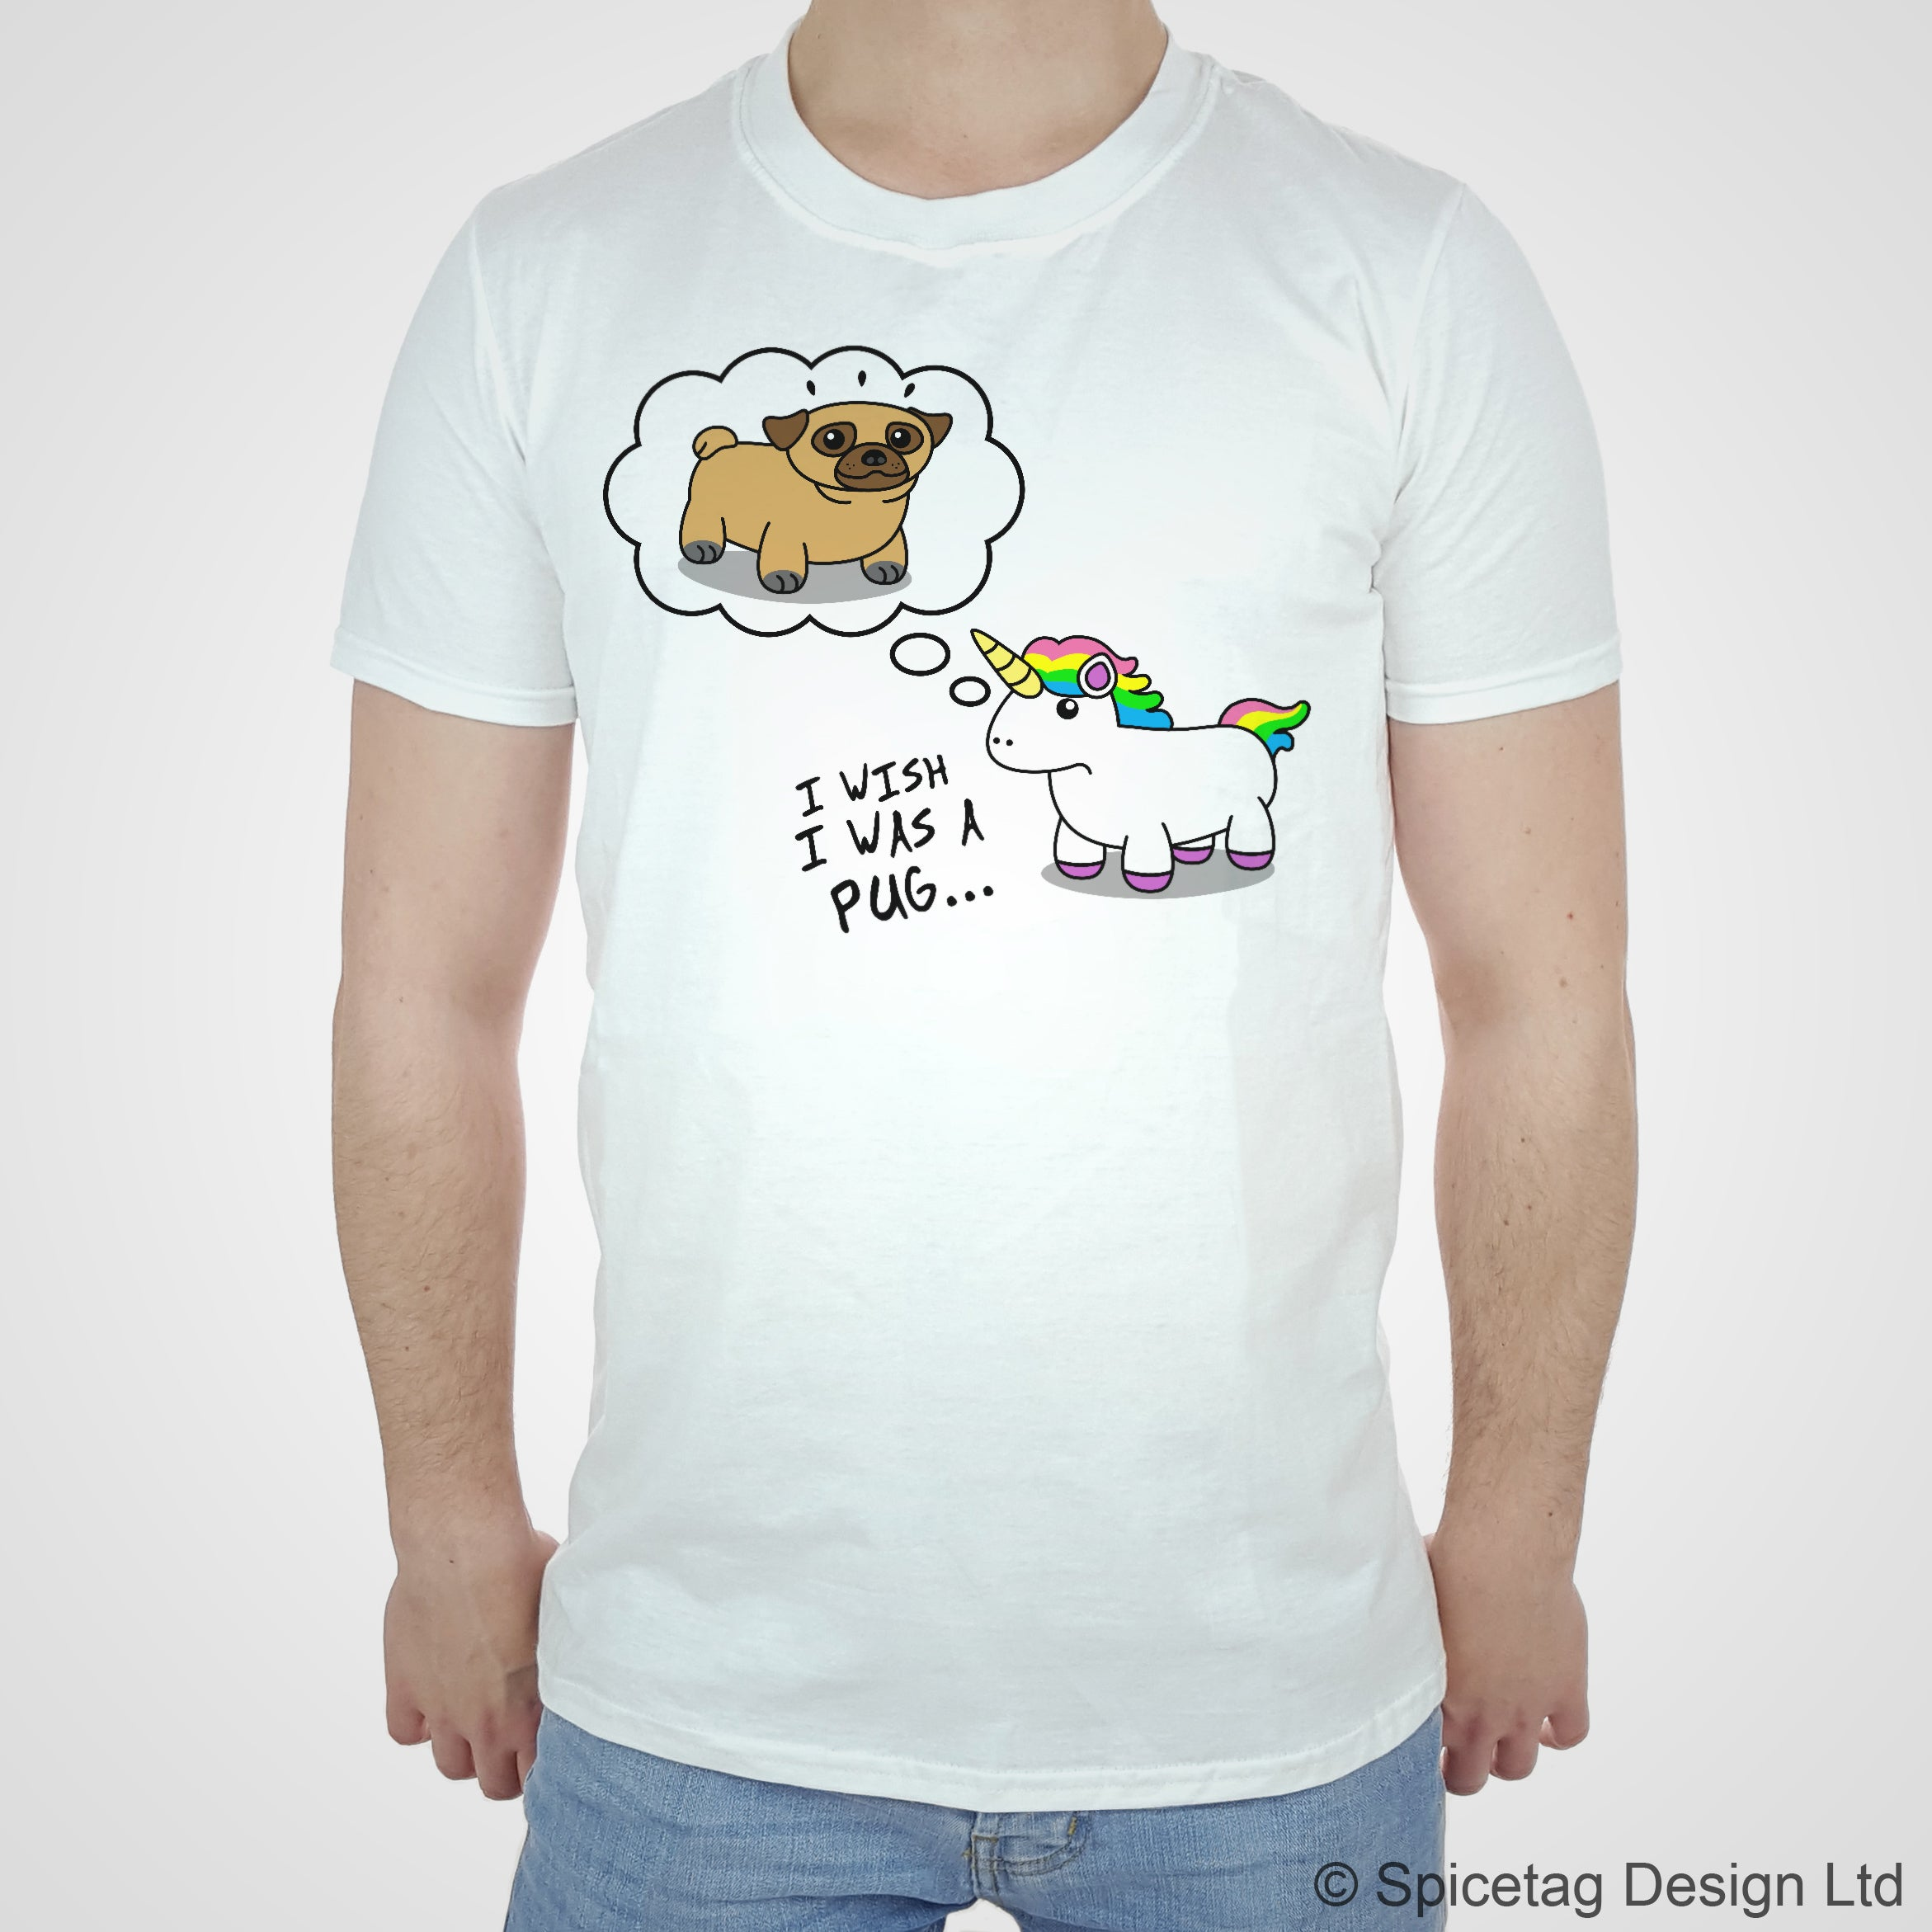 Pug Unicorn Wish T-shirt